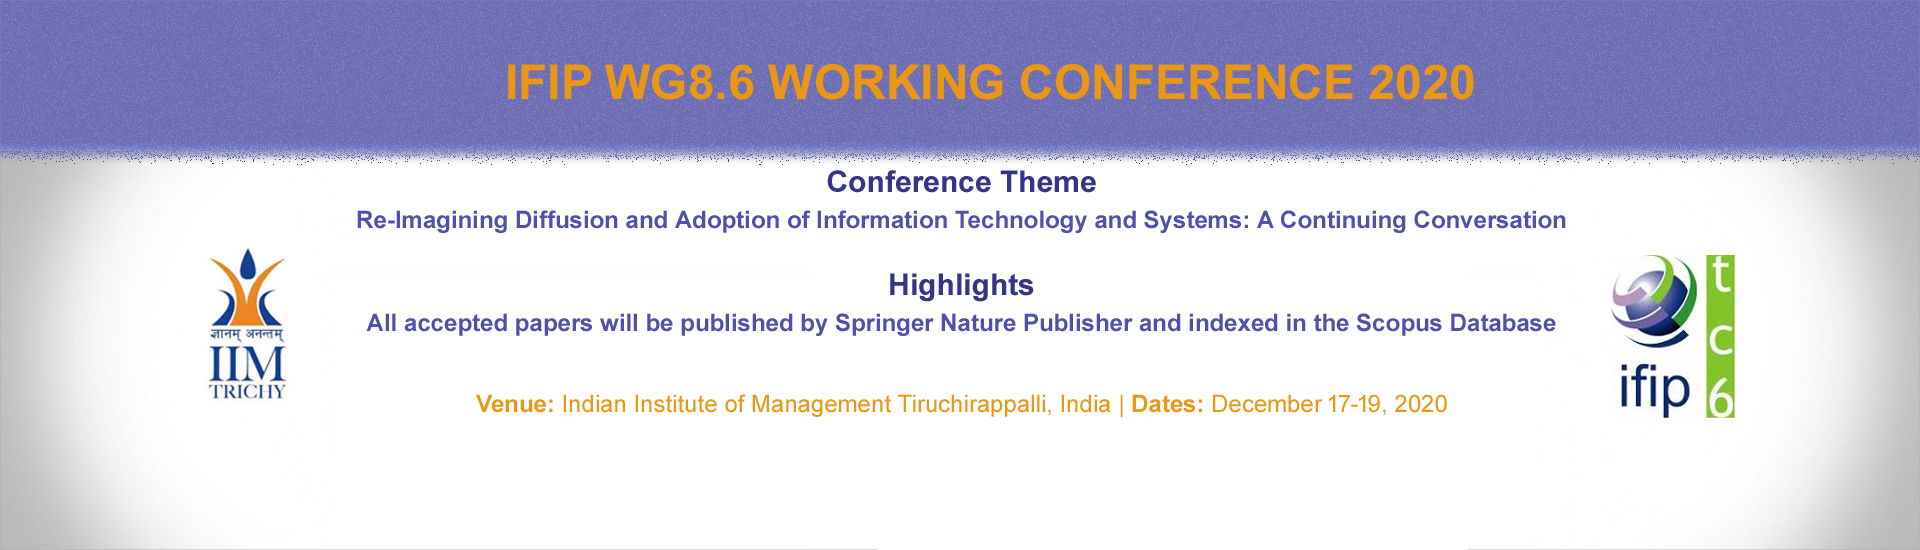 IFIP WG8.6 WORKING CONFERENCE 2020